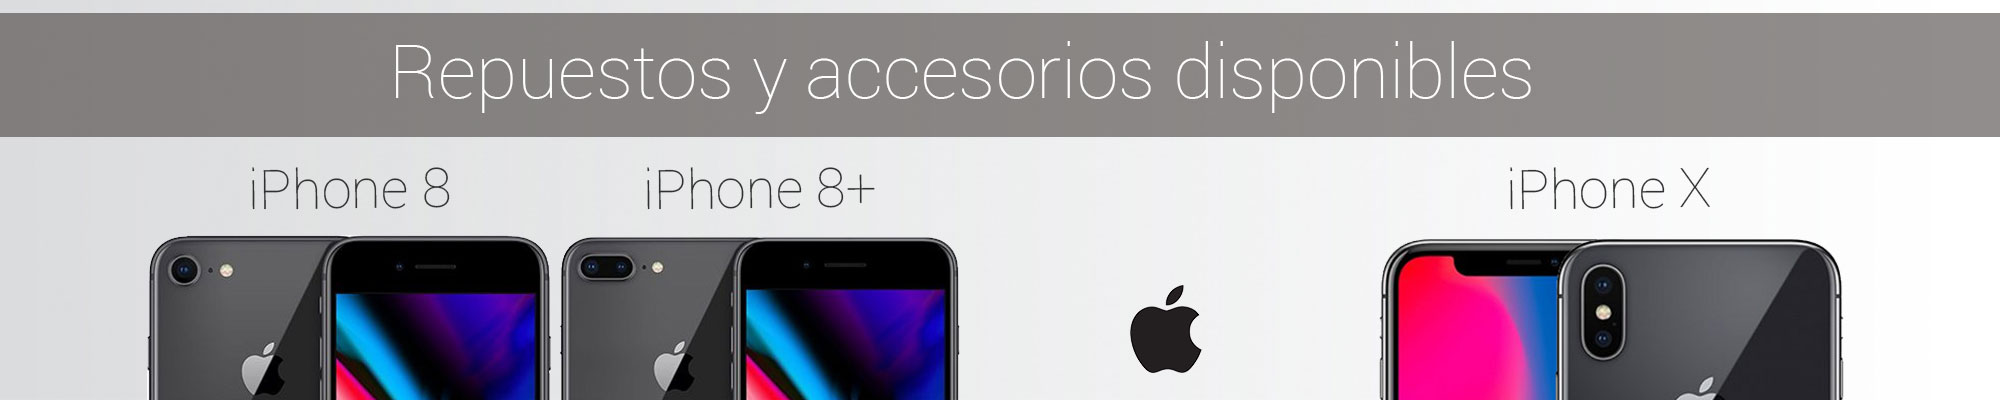 Spare parts and accessoires available for the new Apple iPhone X, iPhone 8 and iPhone 8+